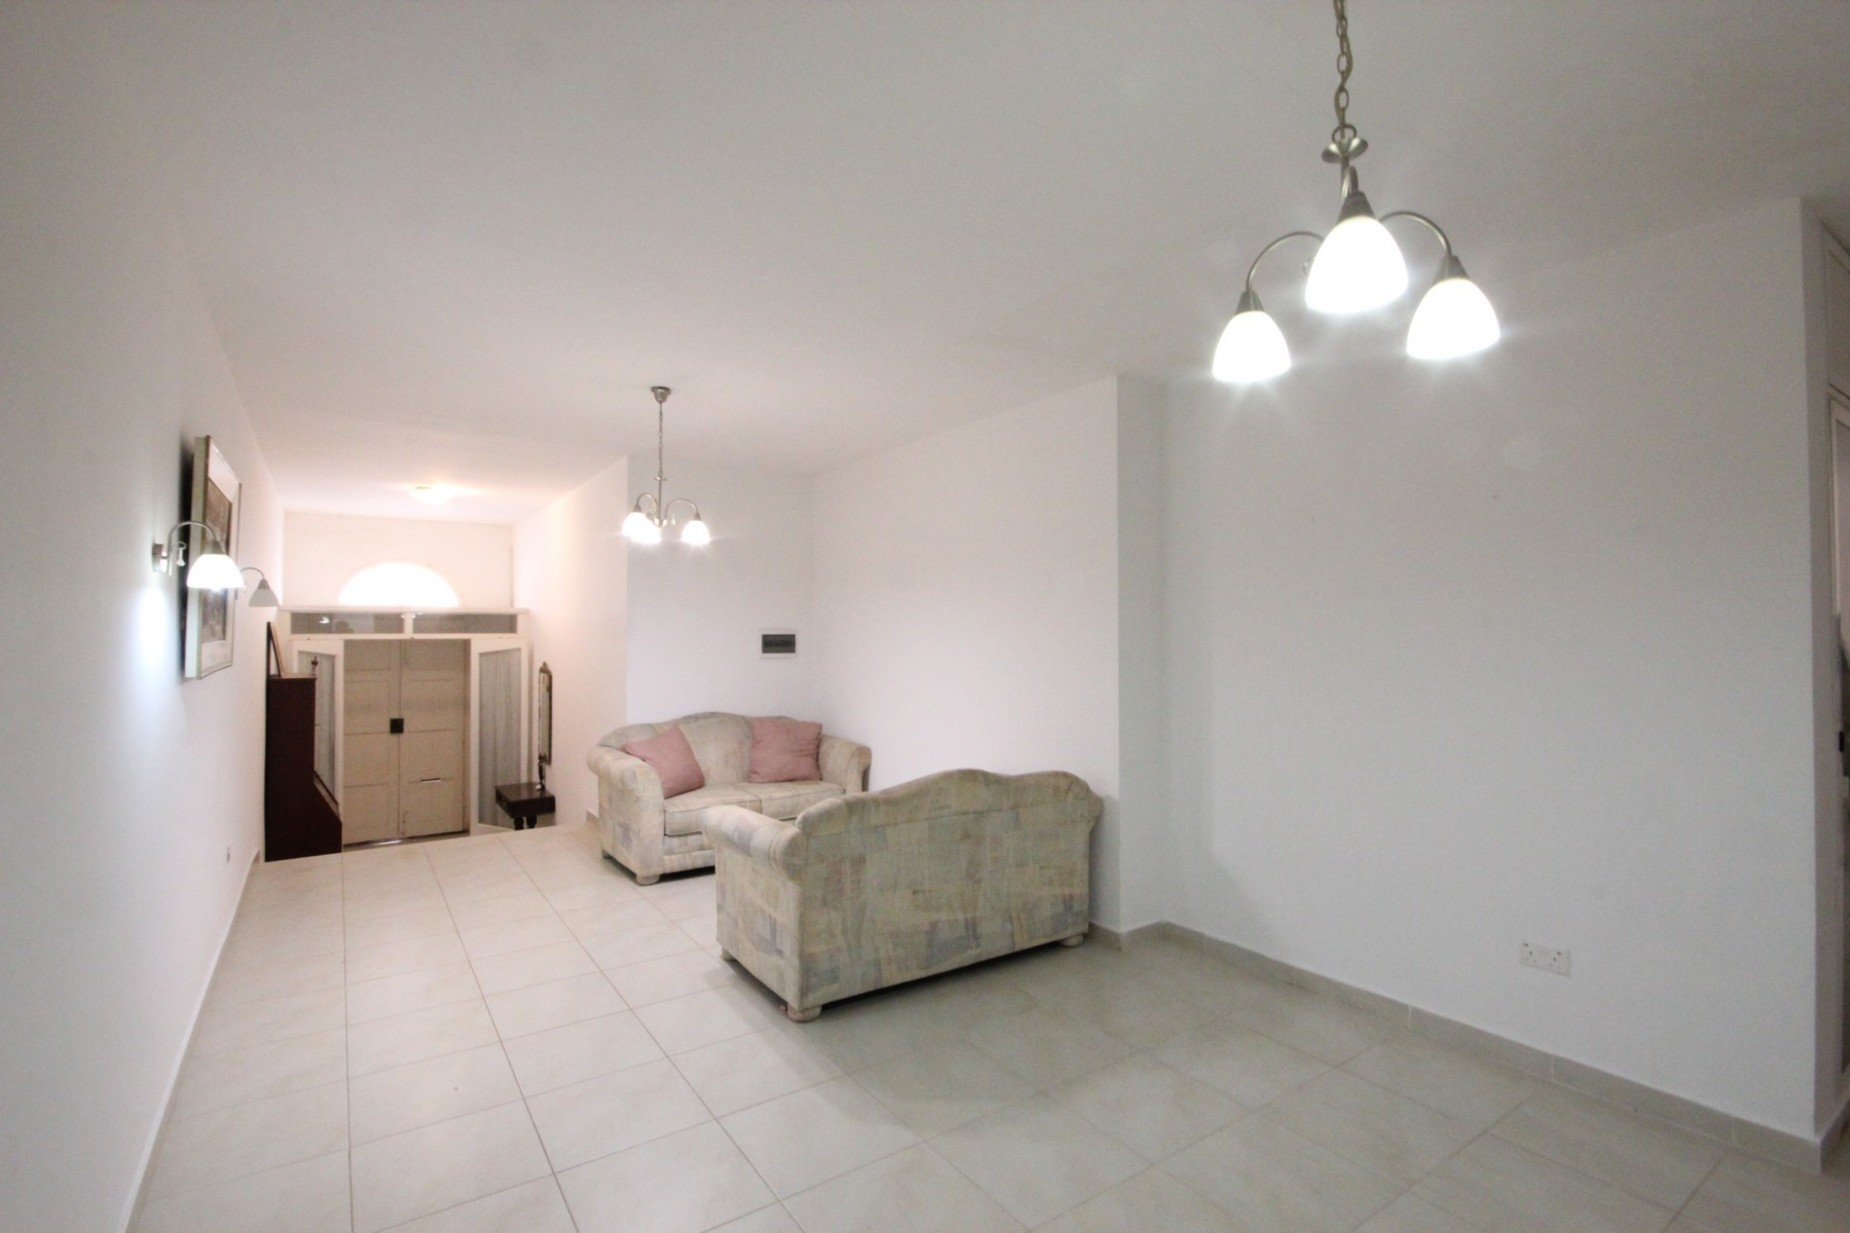 3 bed Maisonette For Rent in Sliema, Sliema - thumb 9